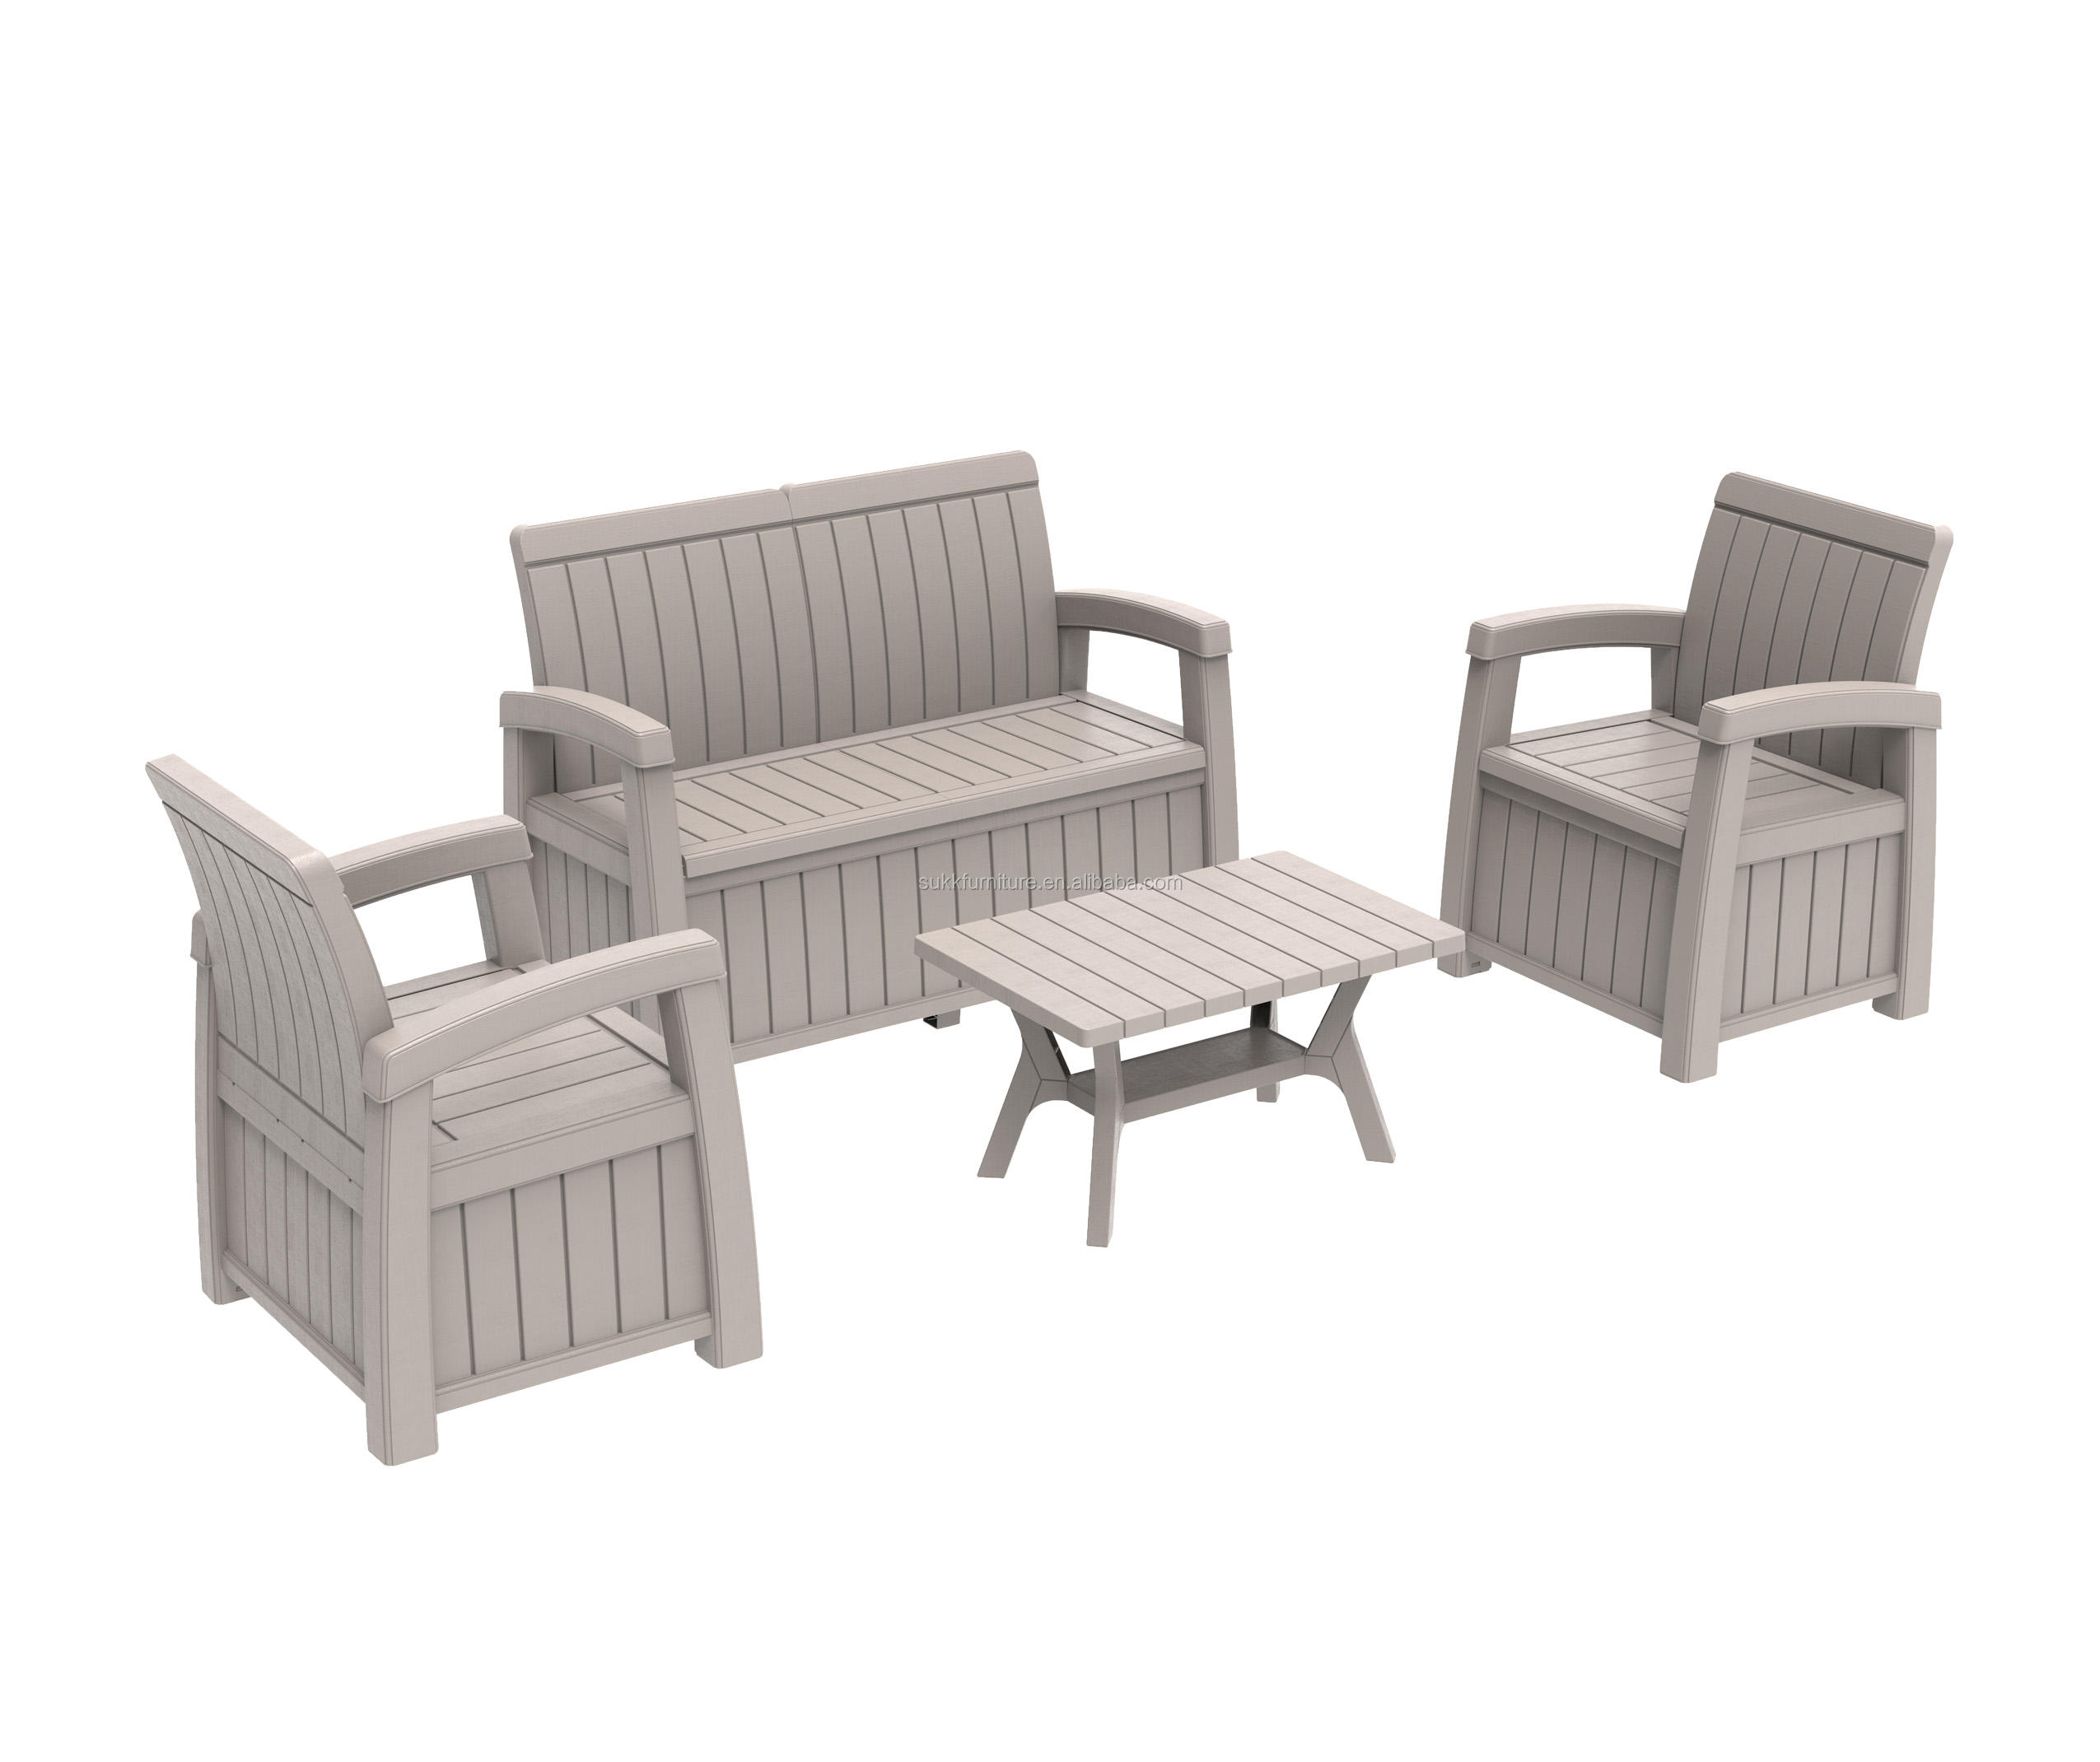 Outdoor Garden Bench With Backrest Patio plastic Storage Bench Deck Box Loveseat Furniture All Weather Cabinet Seat